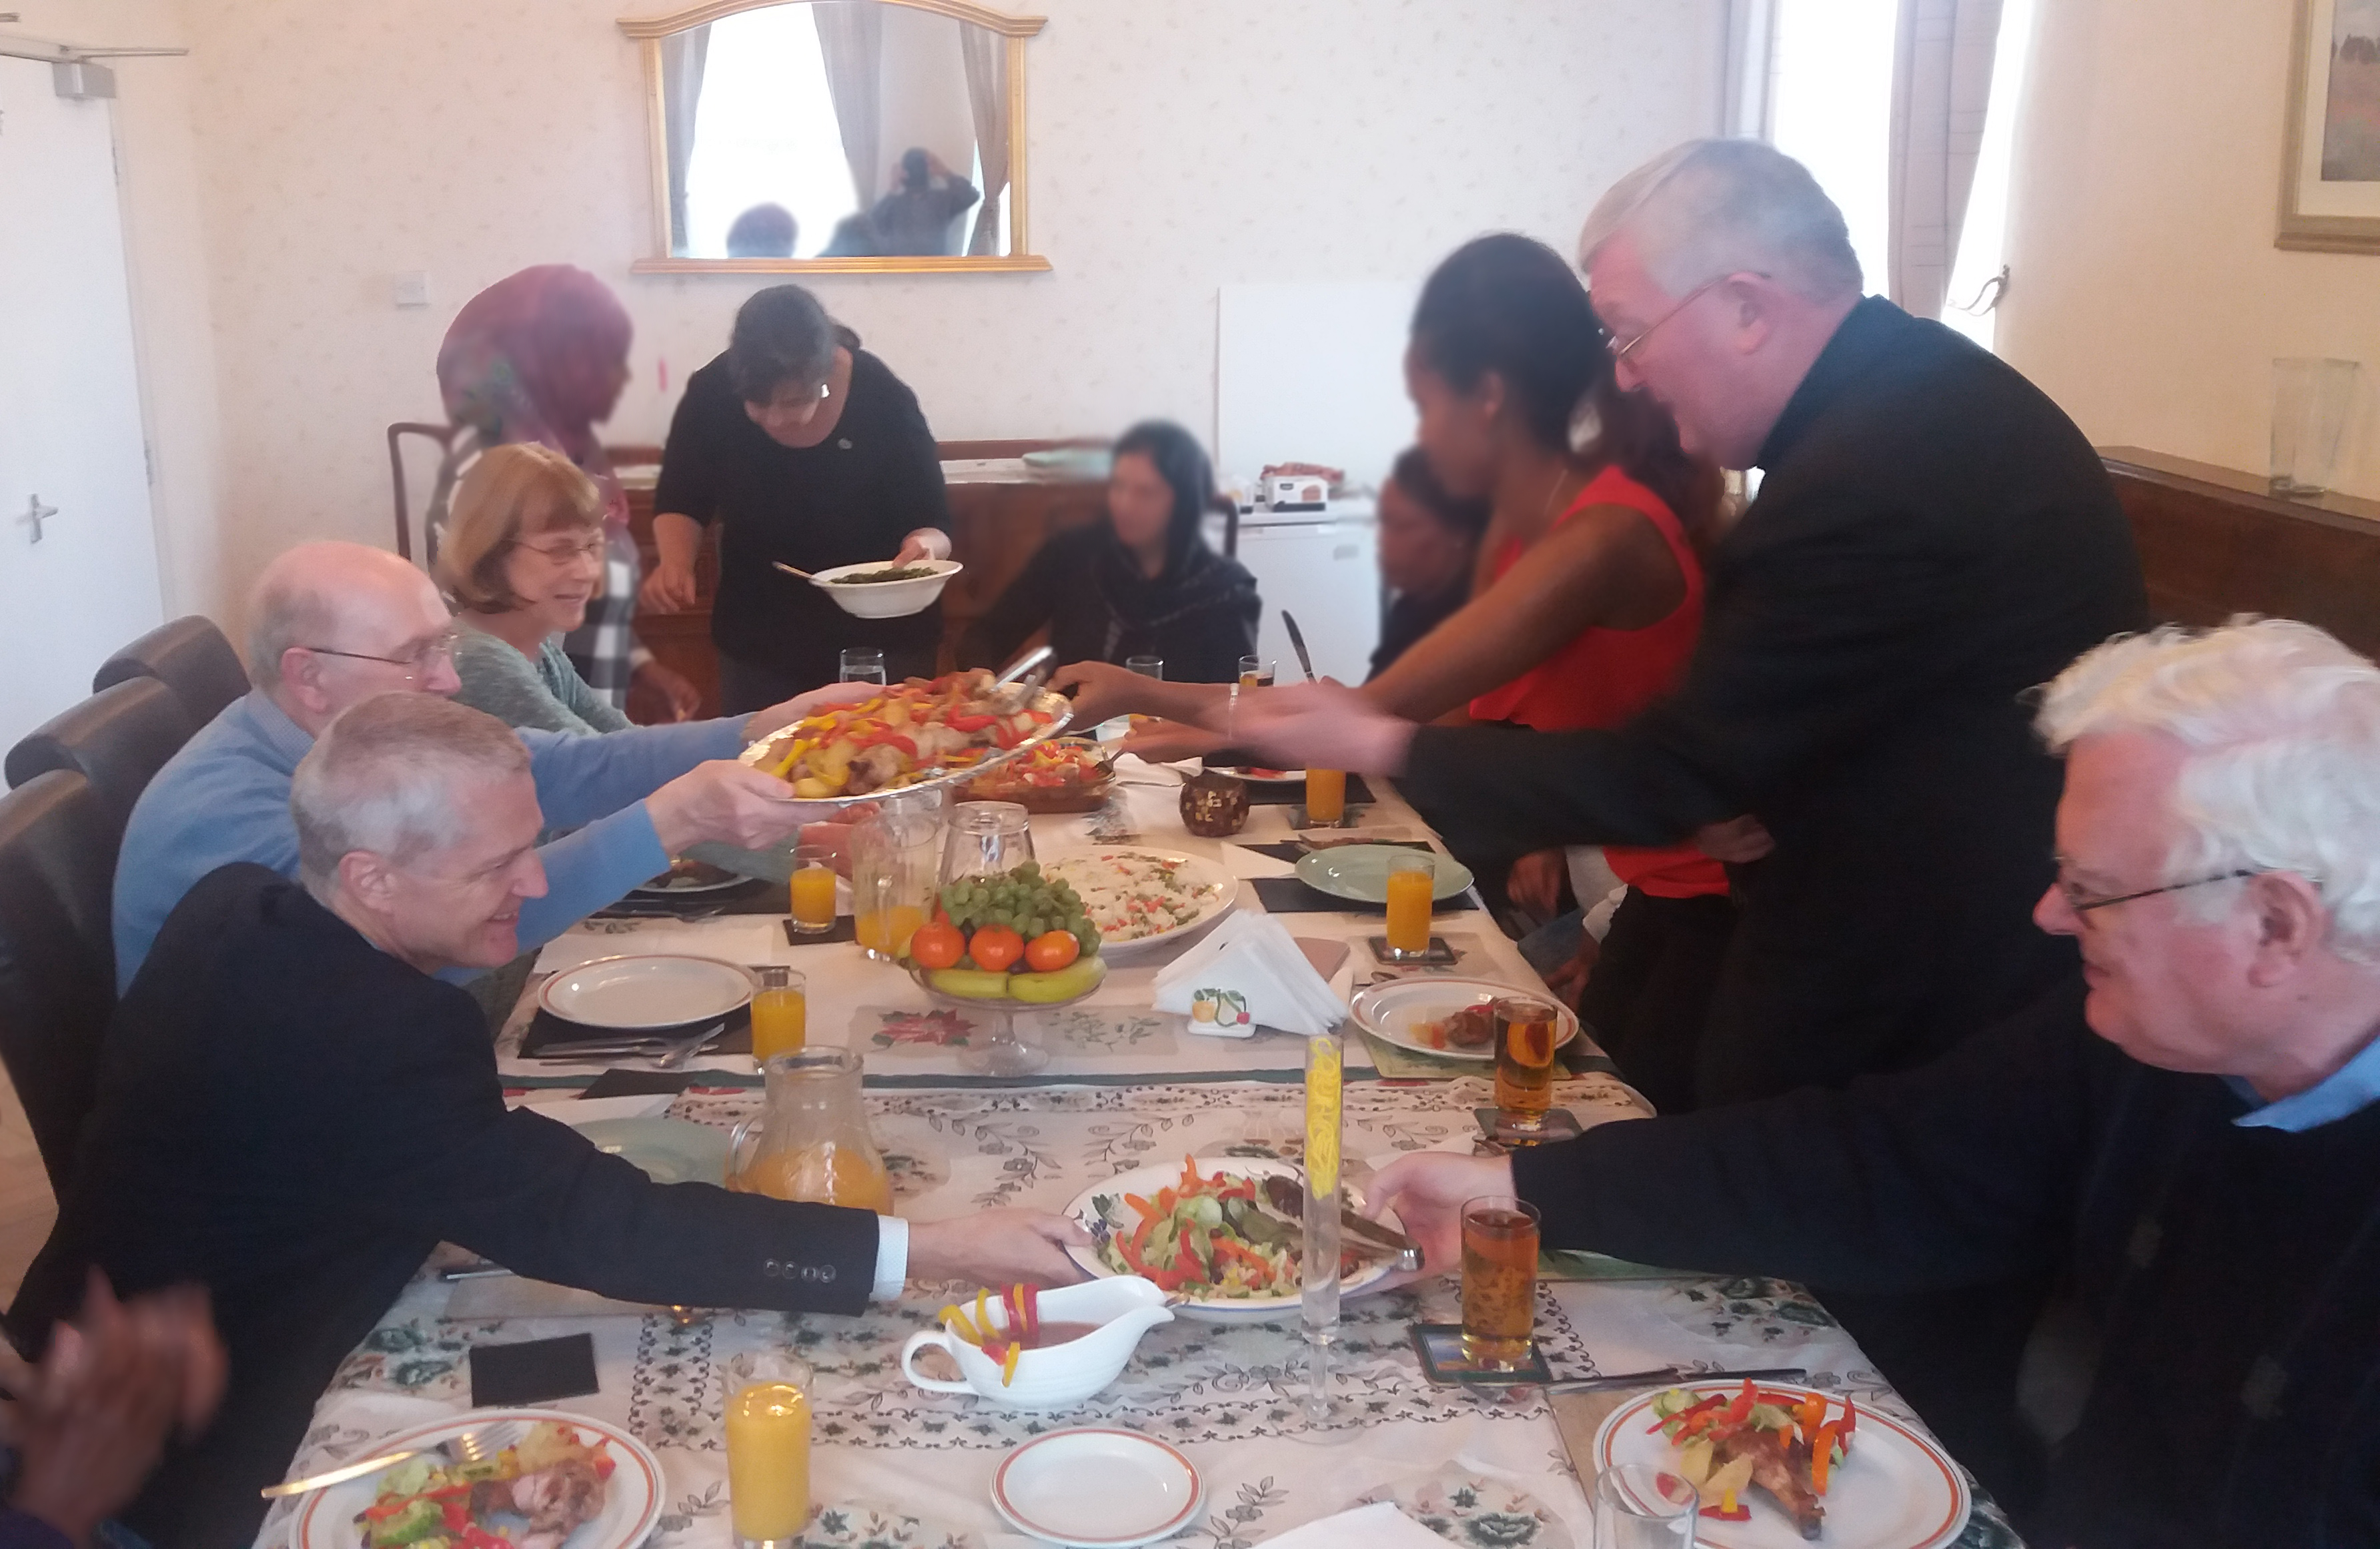 Fatima House is one of the projects the Caritas network helped set up